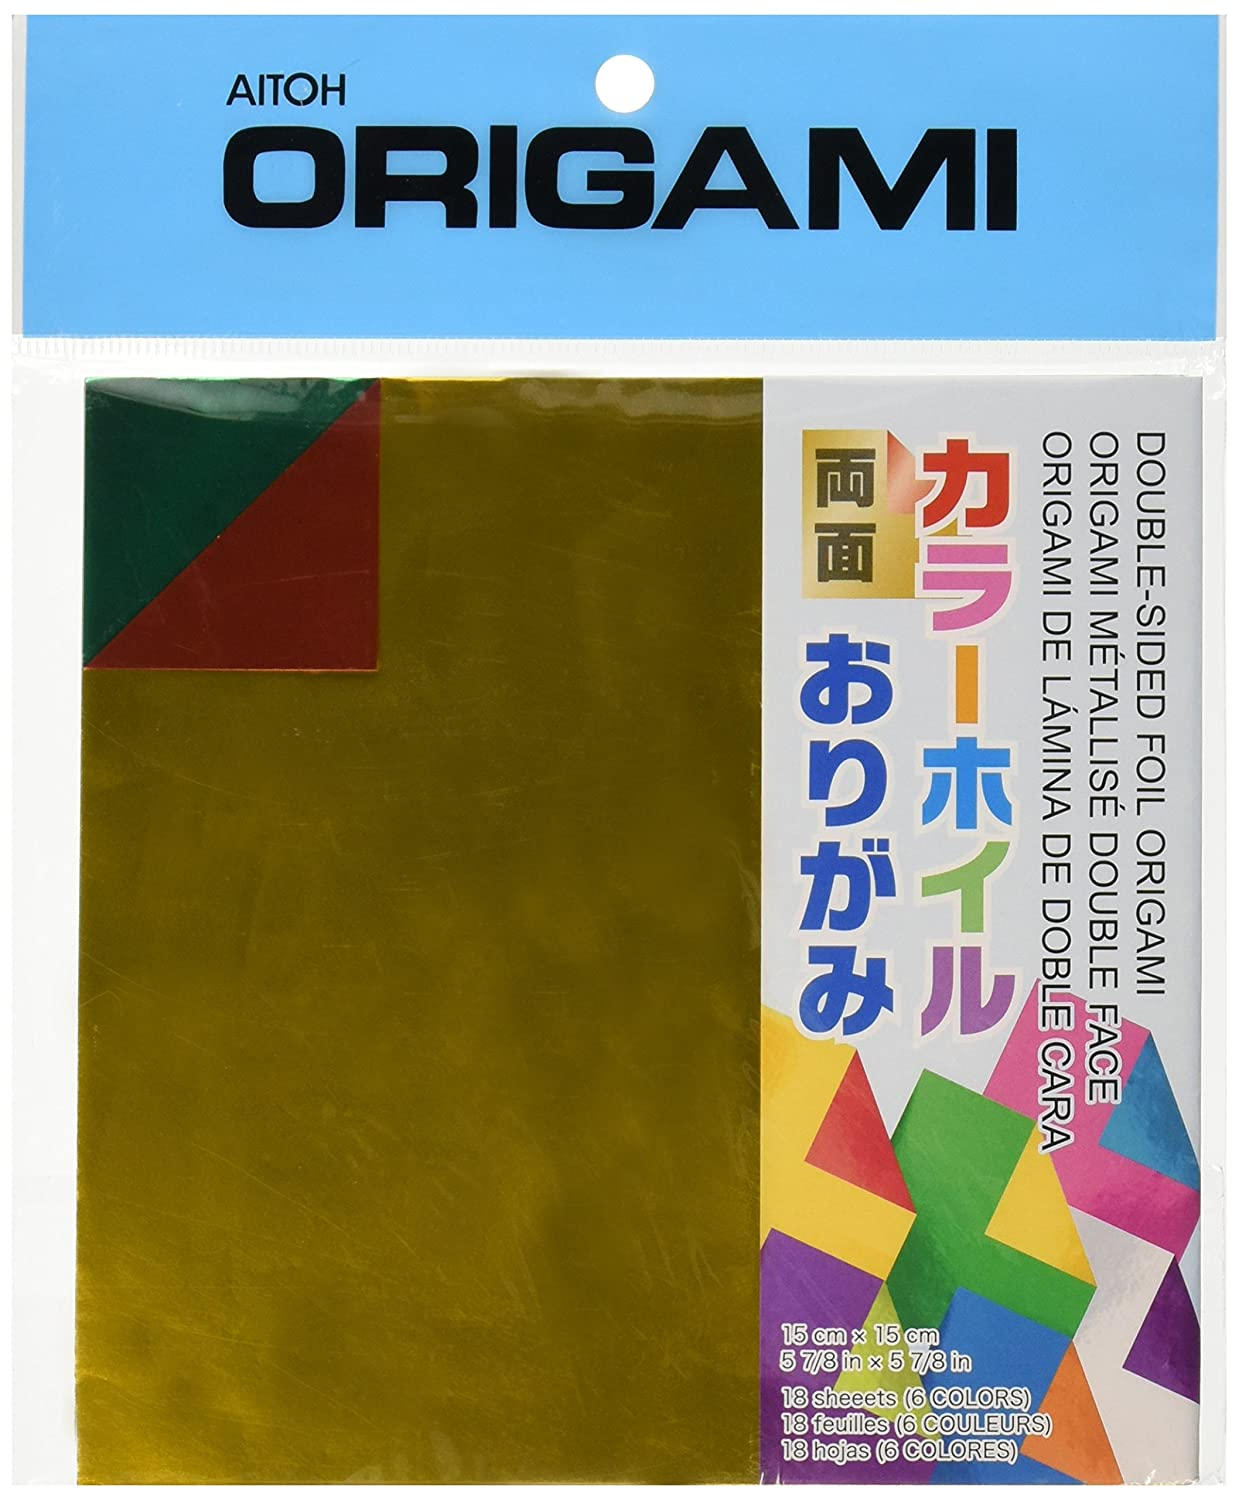 Aitoh DSF-2 Double-Sided Foil Origami Paper, 5.875-Inch by 5.875-Inch, 18-Pack